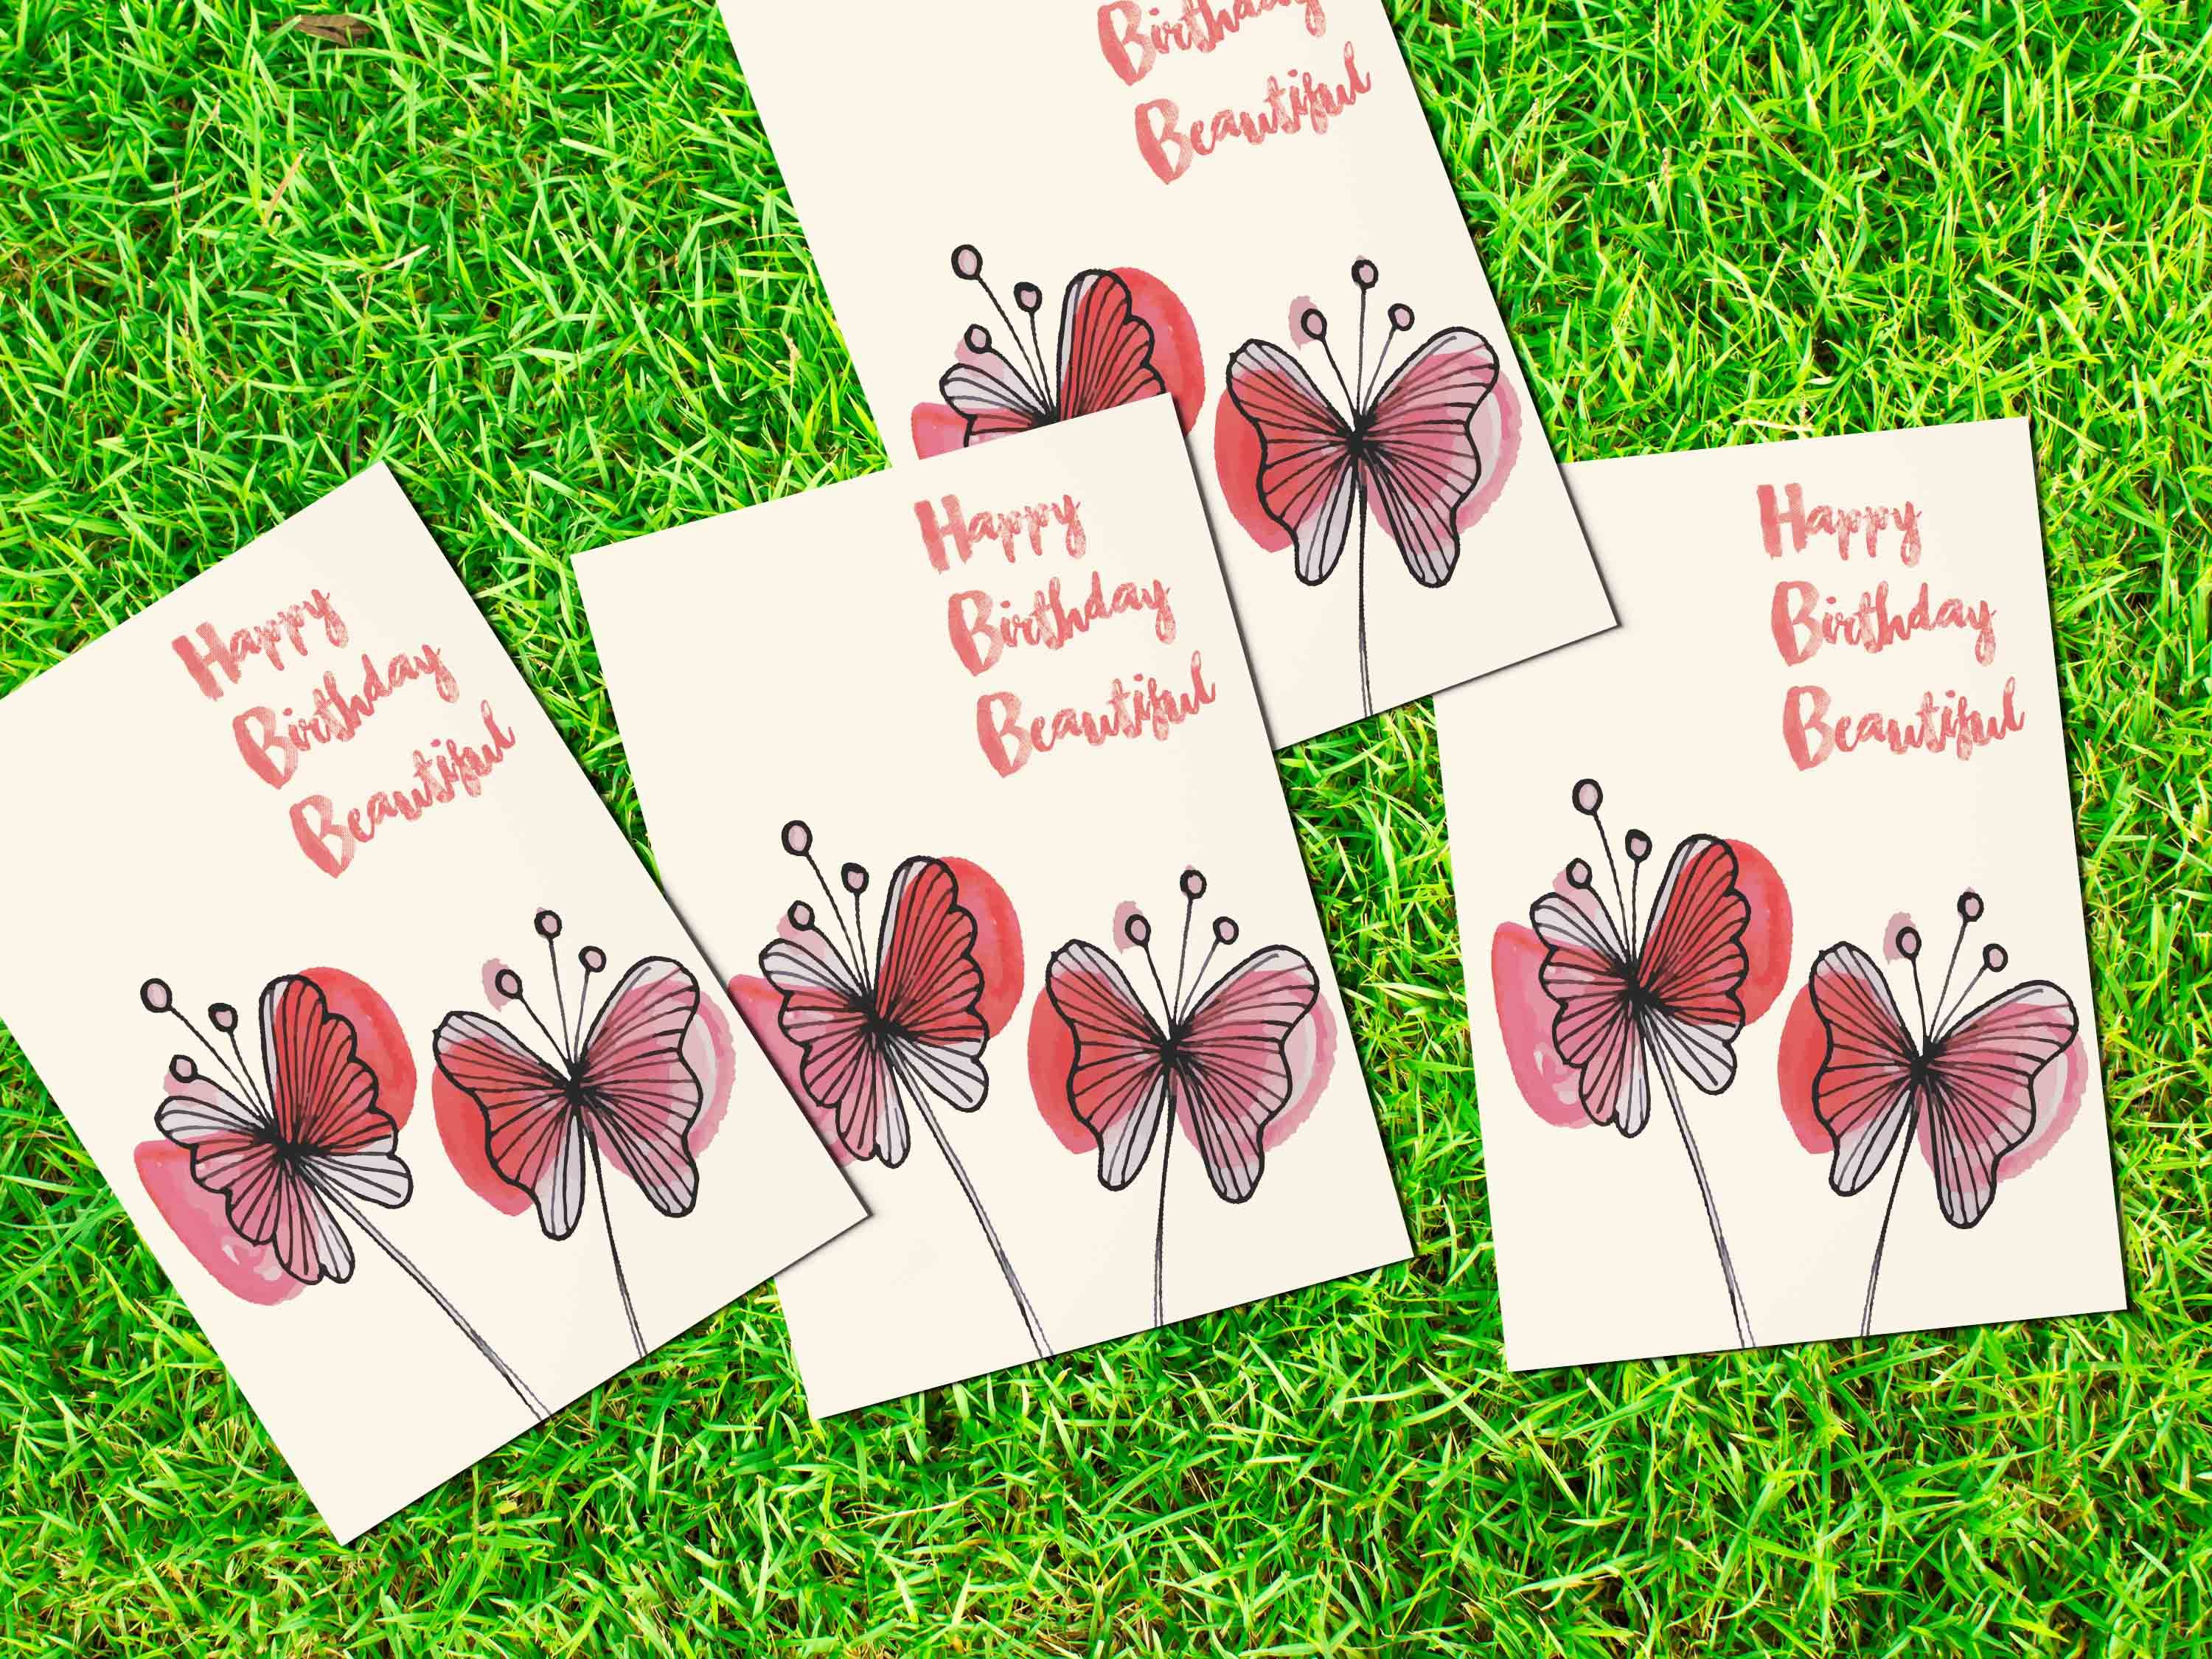 Birthday Cards For Female Either Sister Or Friend With Gathering